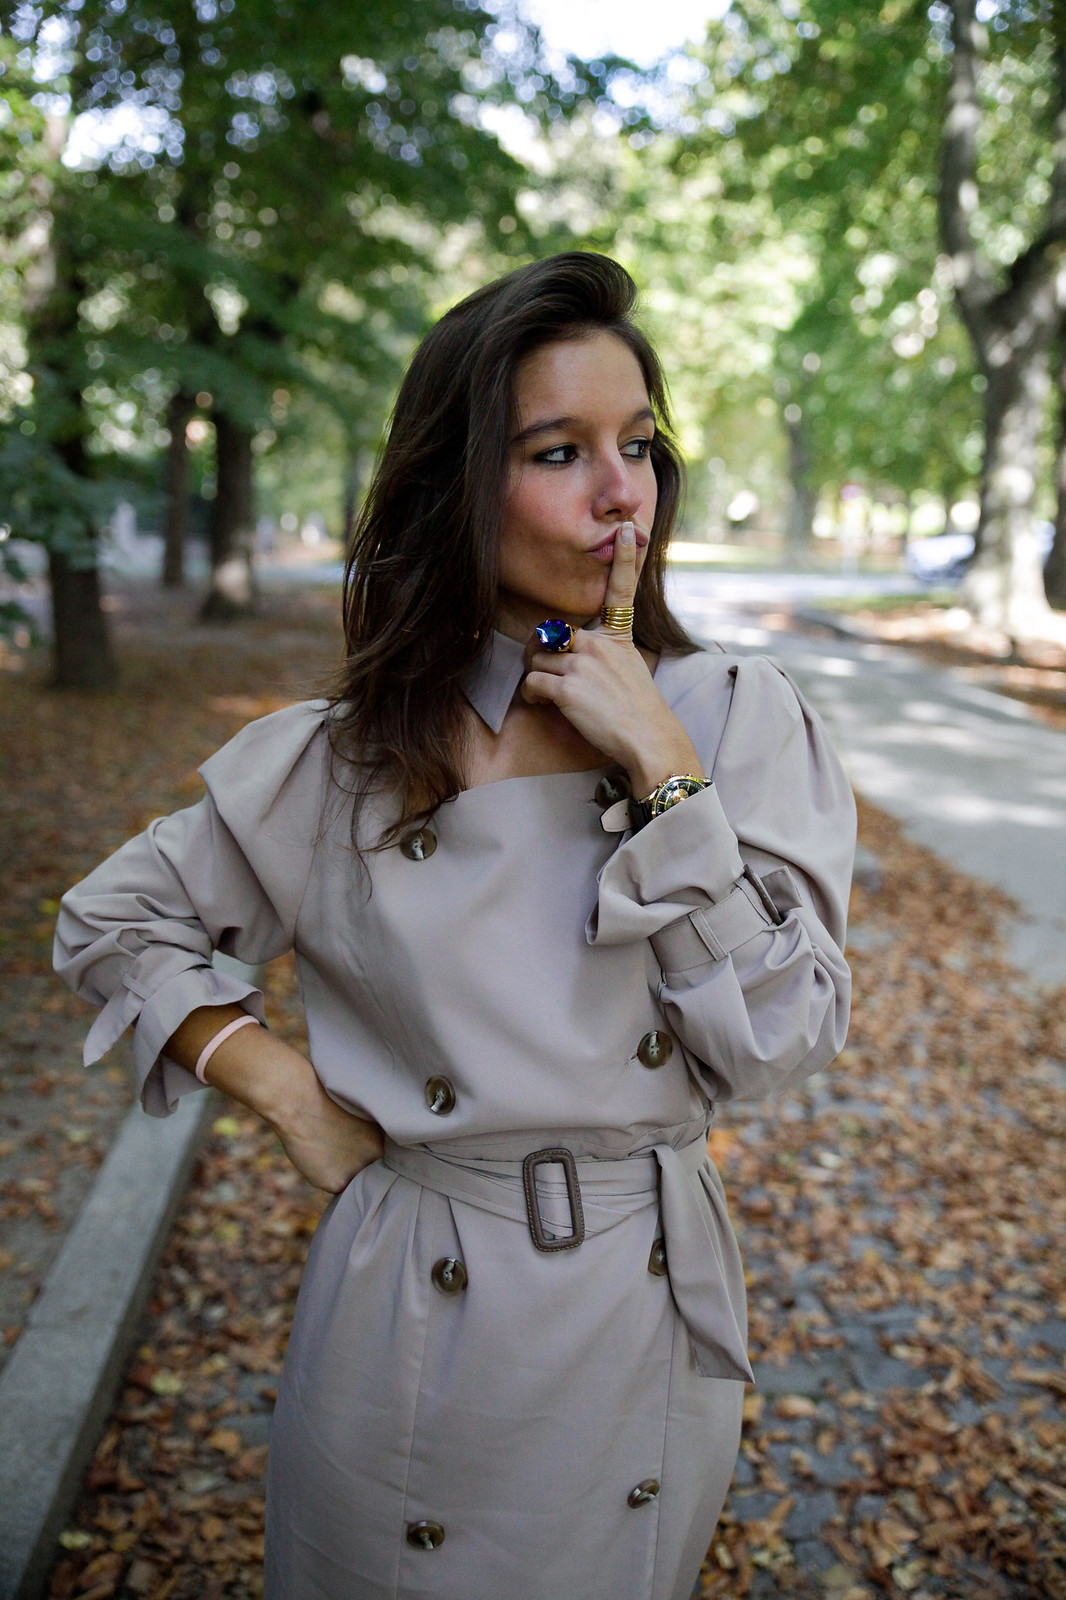 theguestgirl influencer barcelona españa spain blogger lifestyle best trench dress ideas look